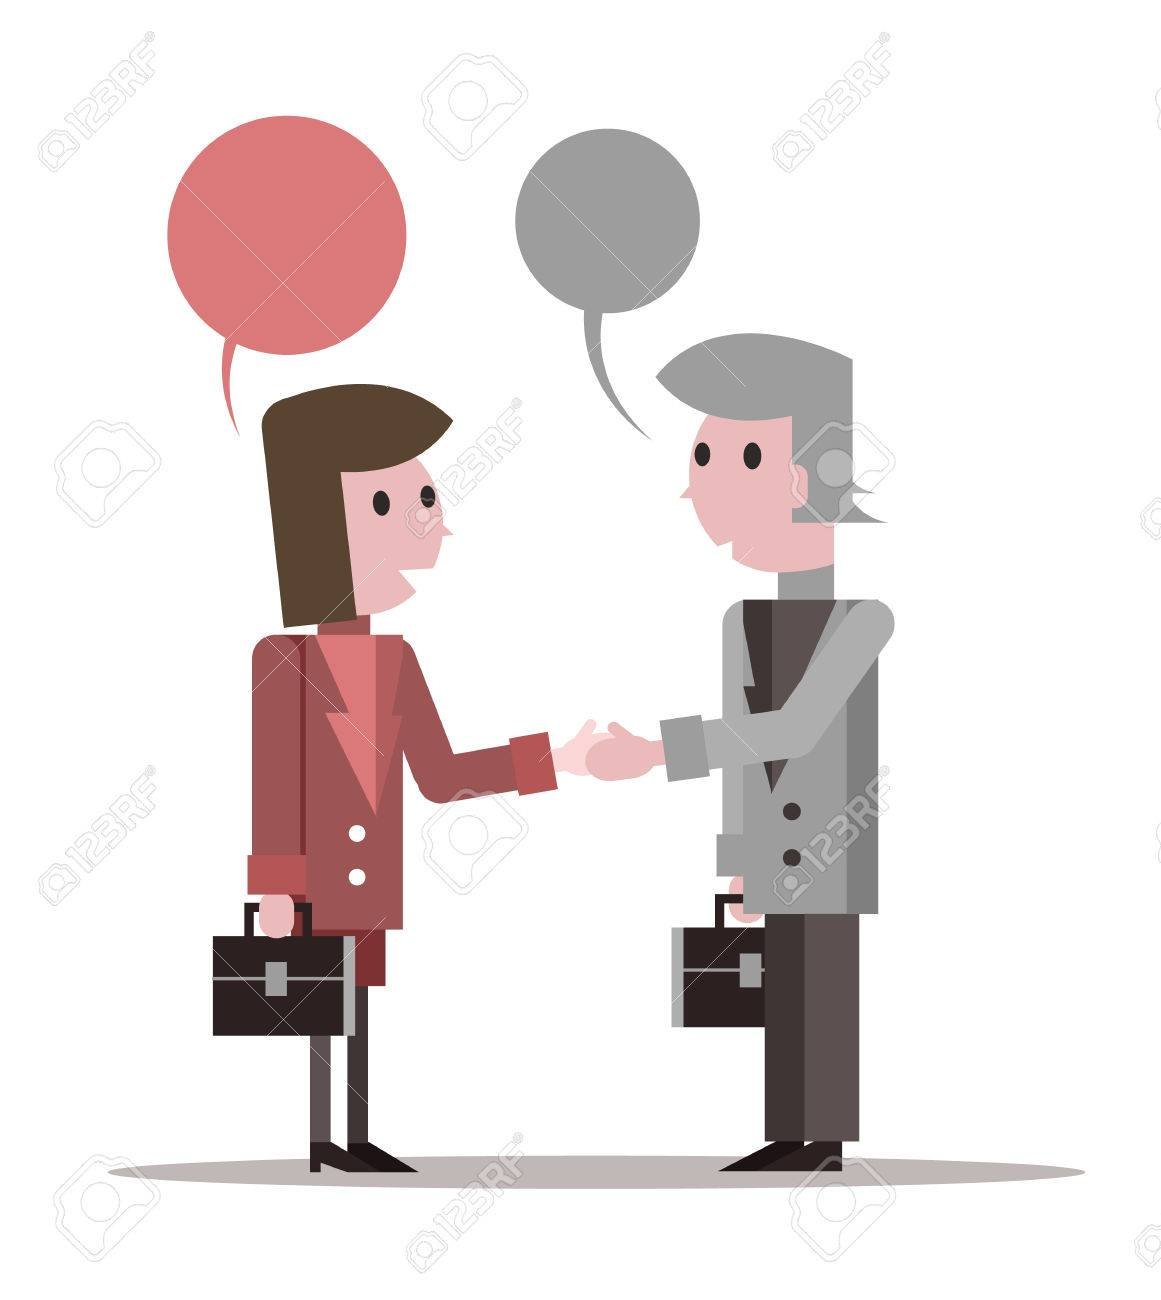 4,678 People Shaking Hands Stock Vector Illustration And Royalty ...